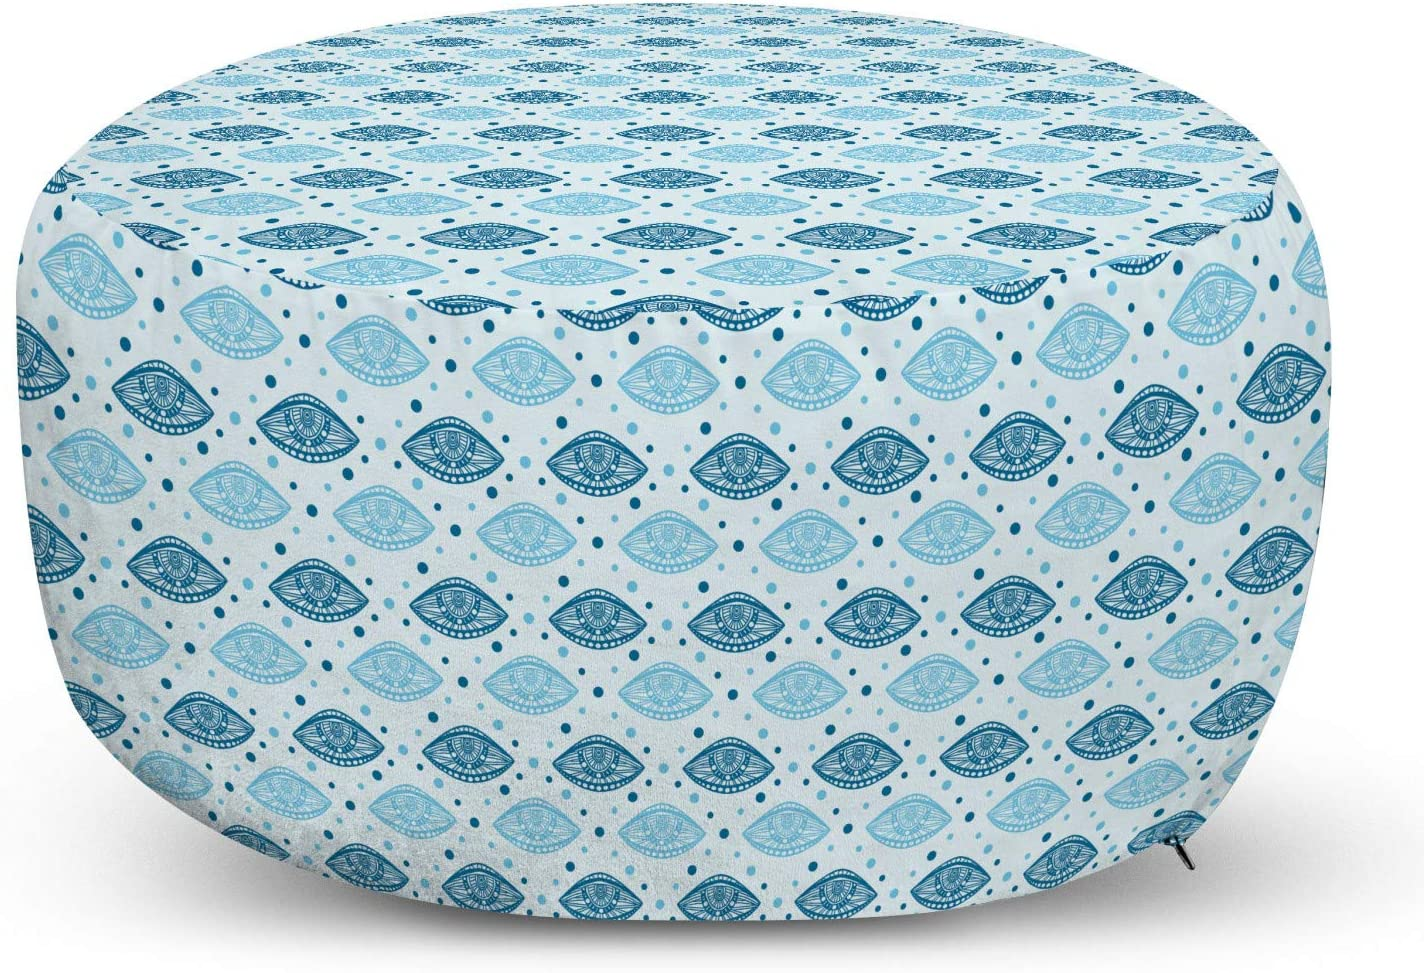 Lunarable Folklore Popular product Pouf Cover with Styl Zipper Selling Oriental Eastern